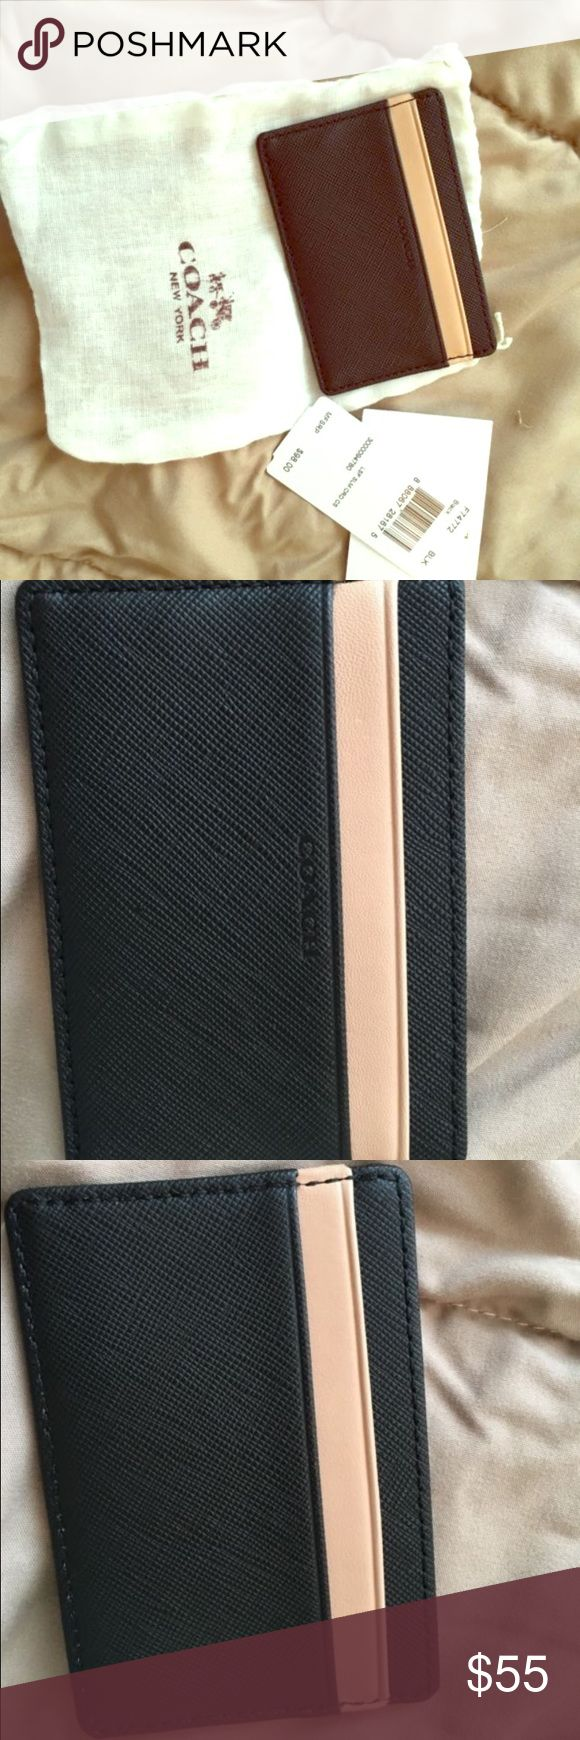 Brand new coach leather skinny wallet Never used comes with tag and original dust bag. Black and Tan leather skinny wallet, perfect for clutches and nights out Coach Bags Wallets